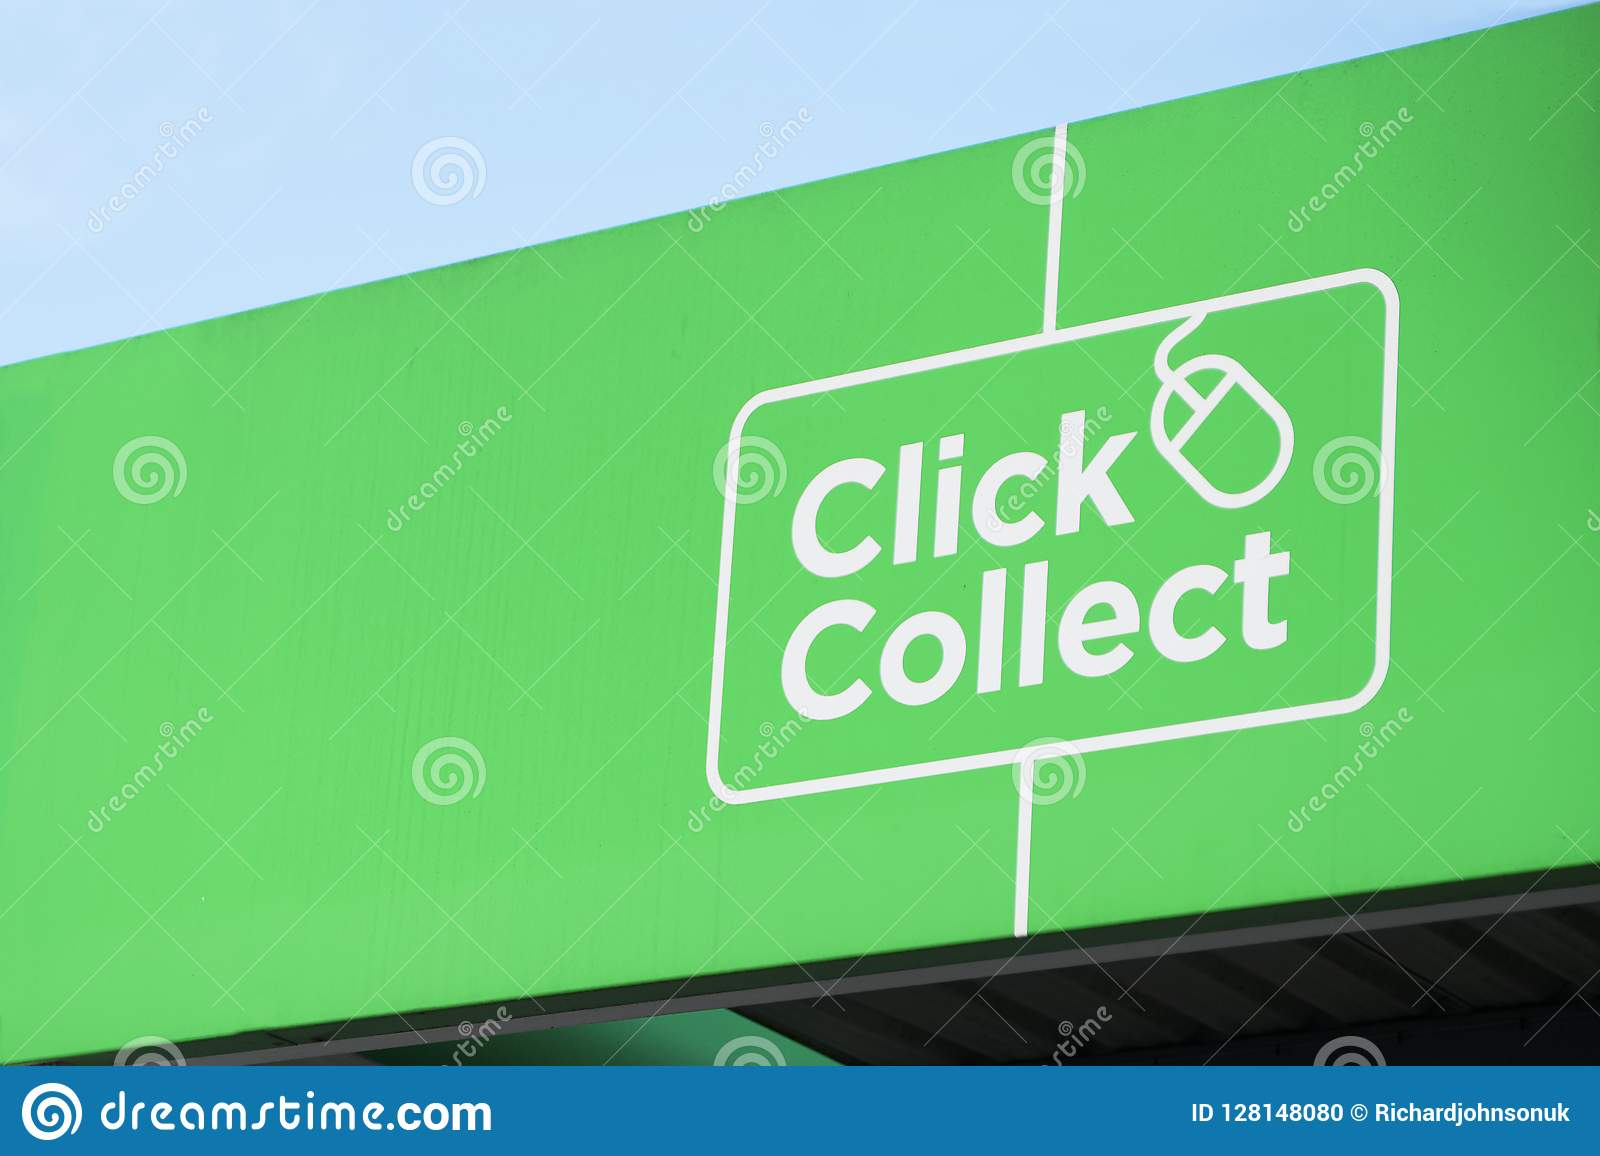 Click collect online shopping shop mall quick easy green sign